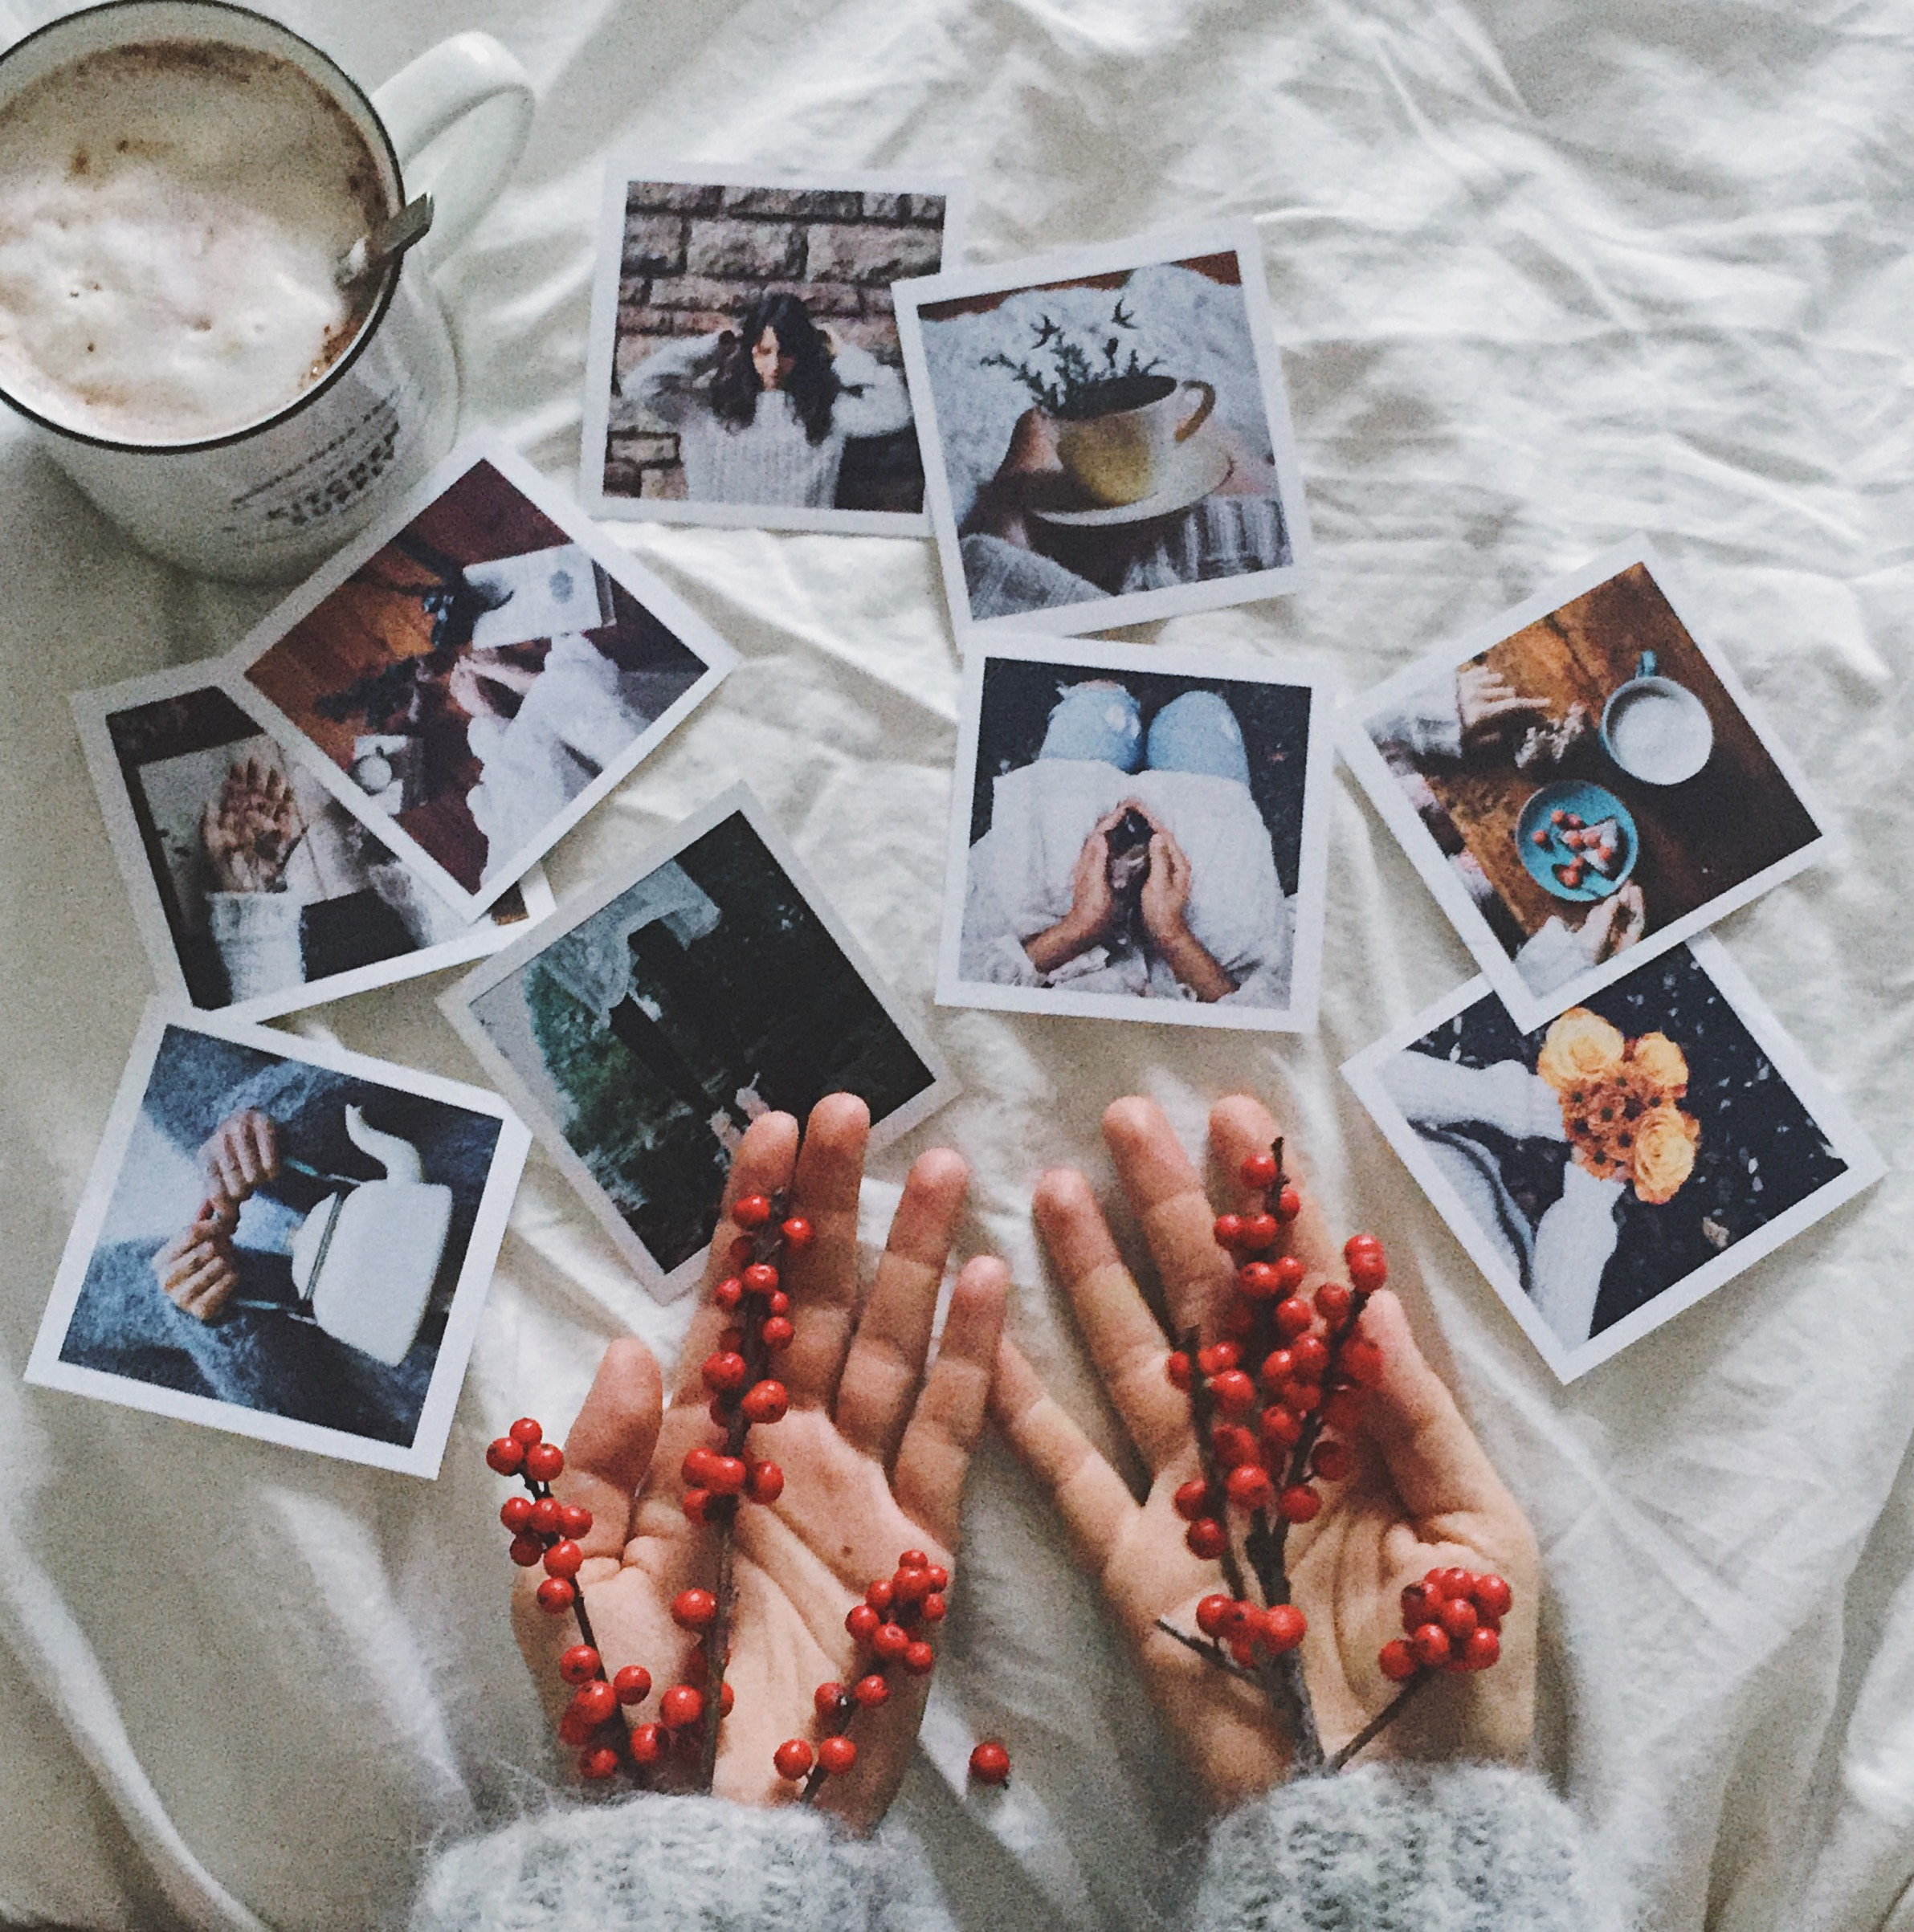 Coffe cups and polaroid pictures in bed